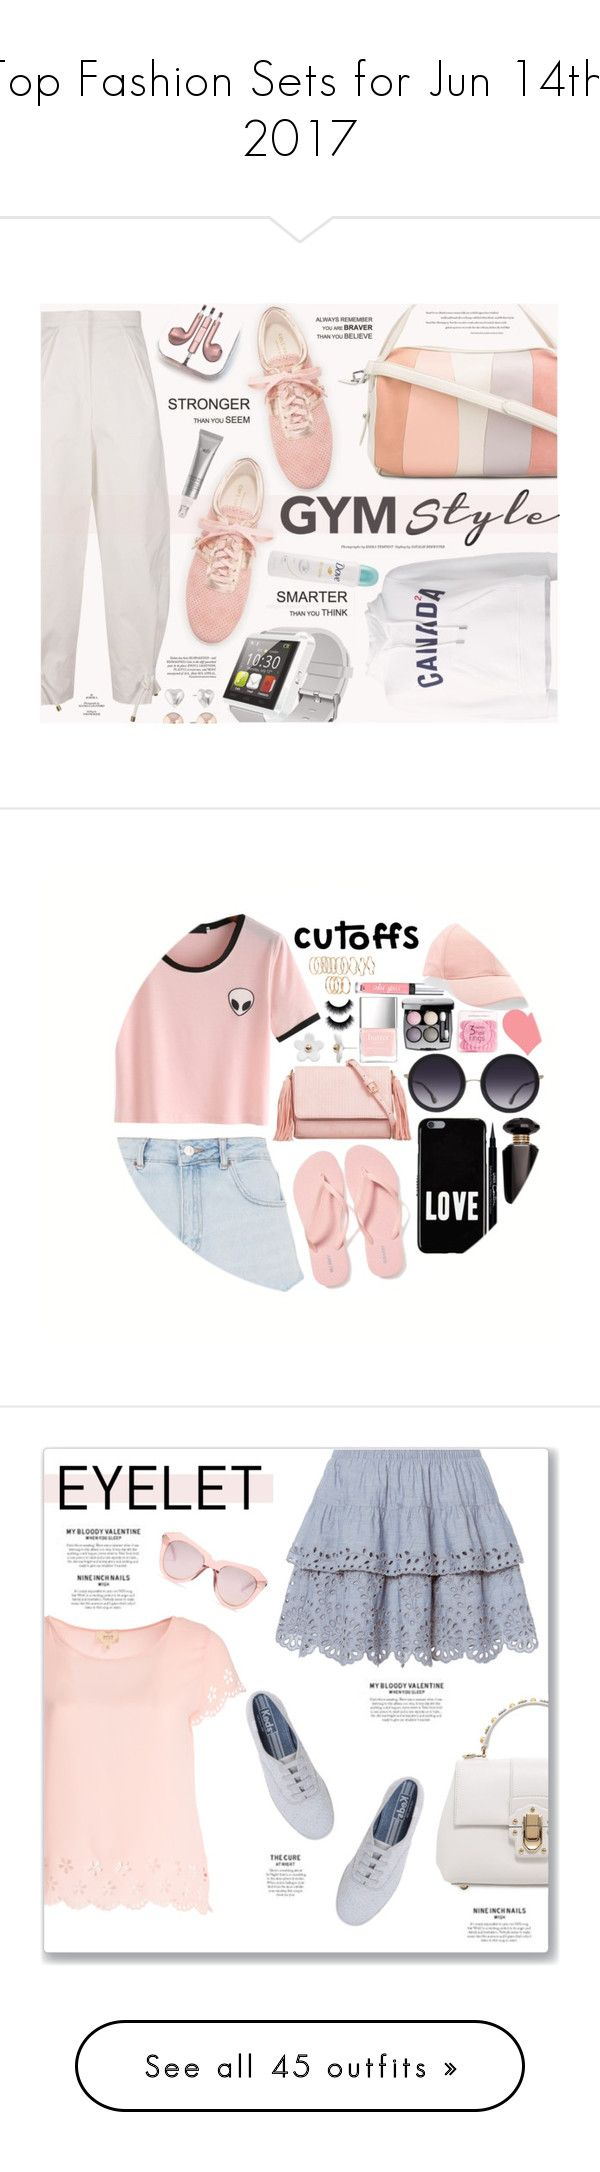 """""""Top Fashion Sets for Jun 14th, 2017"""" by polyvore ❤ liked on Polyvore featuring 10 Crosby Derek Lam, Kenzo, Cole Haan, Dsquared2, PhunkeeTree, Natura Bissé, Dove, Liz Claiborne, Topshop and Old Navy"""